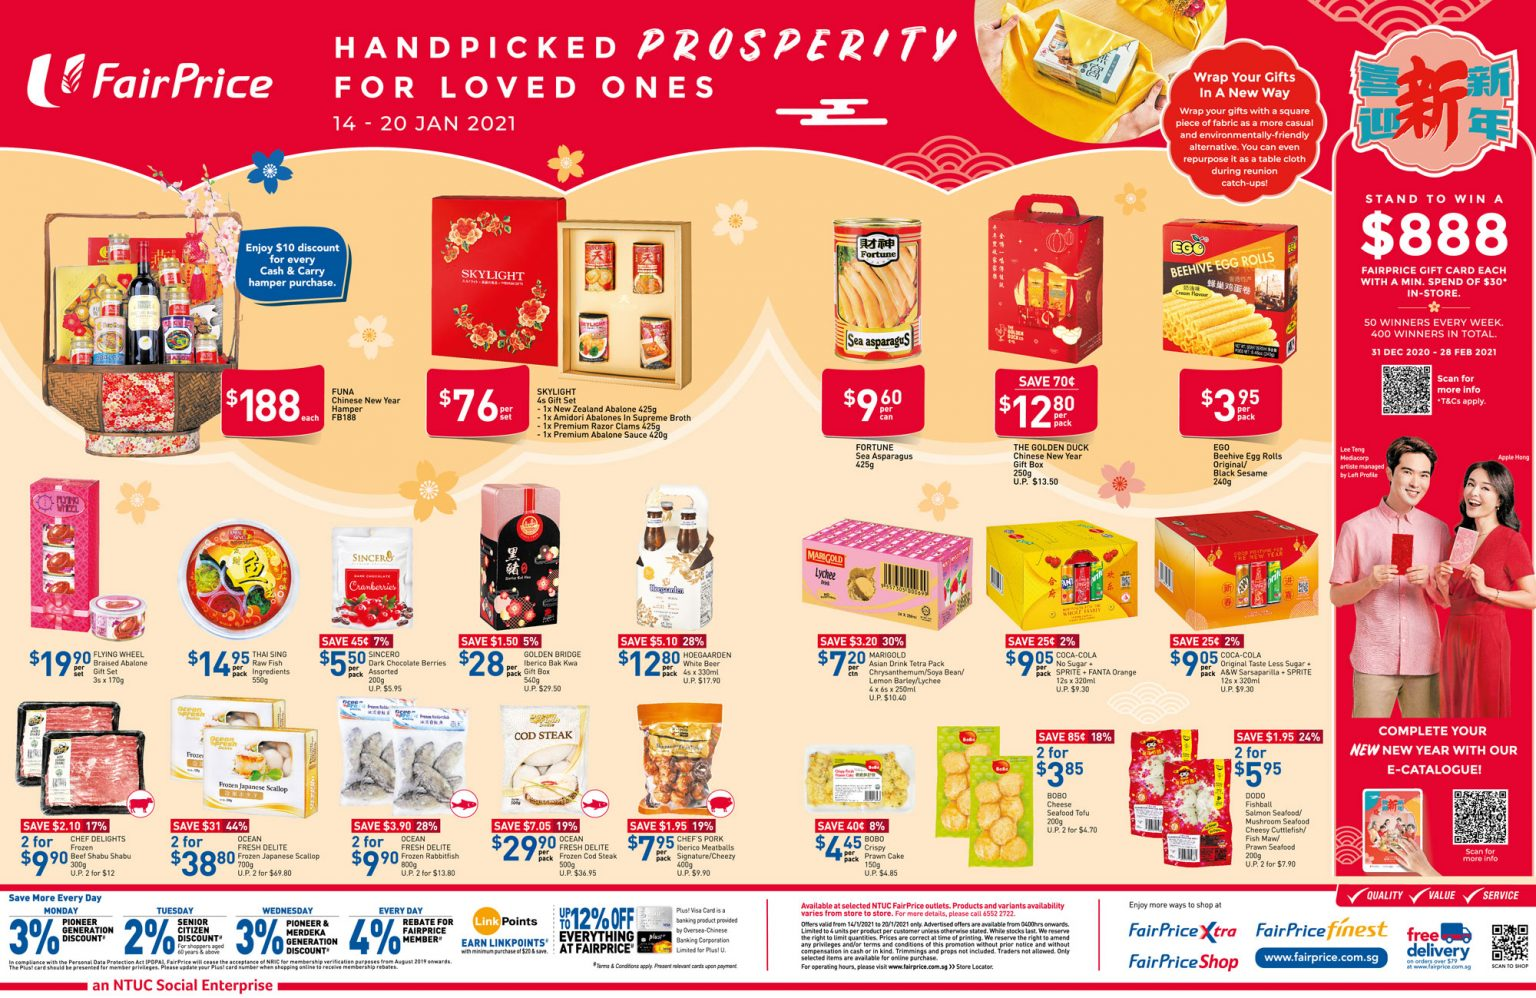 Handpicked prosperity products for everyone till 20 January 2021